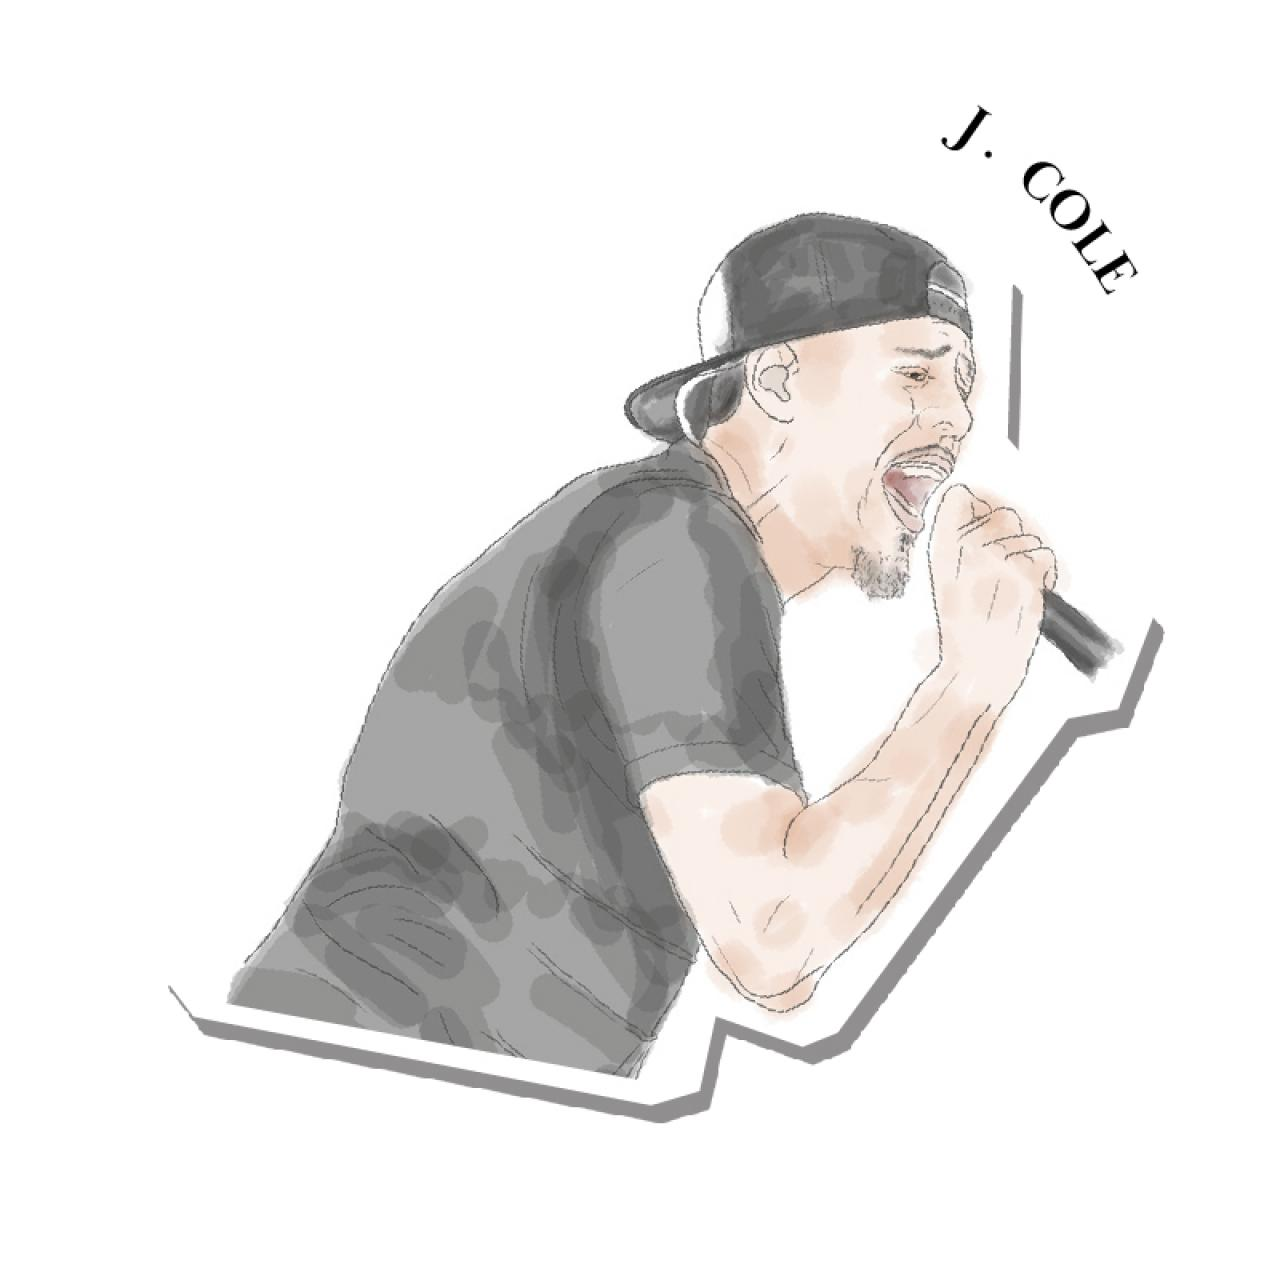 An illustration of J. Cole